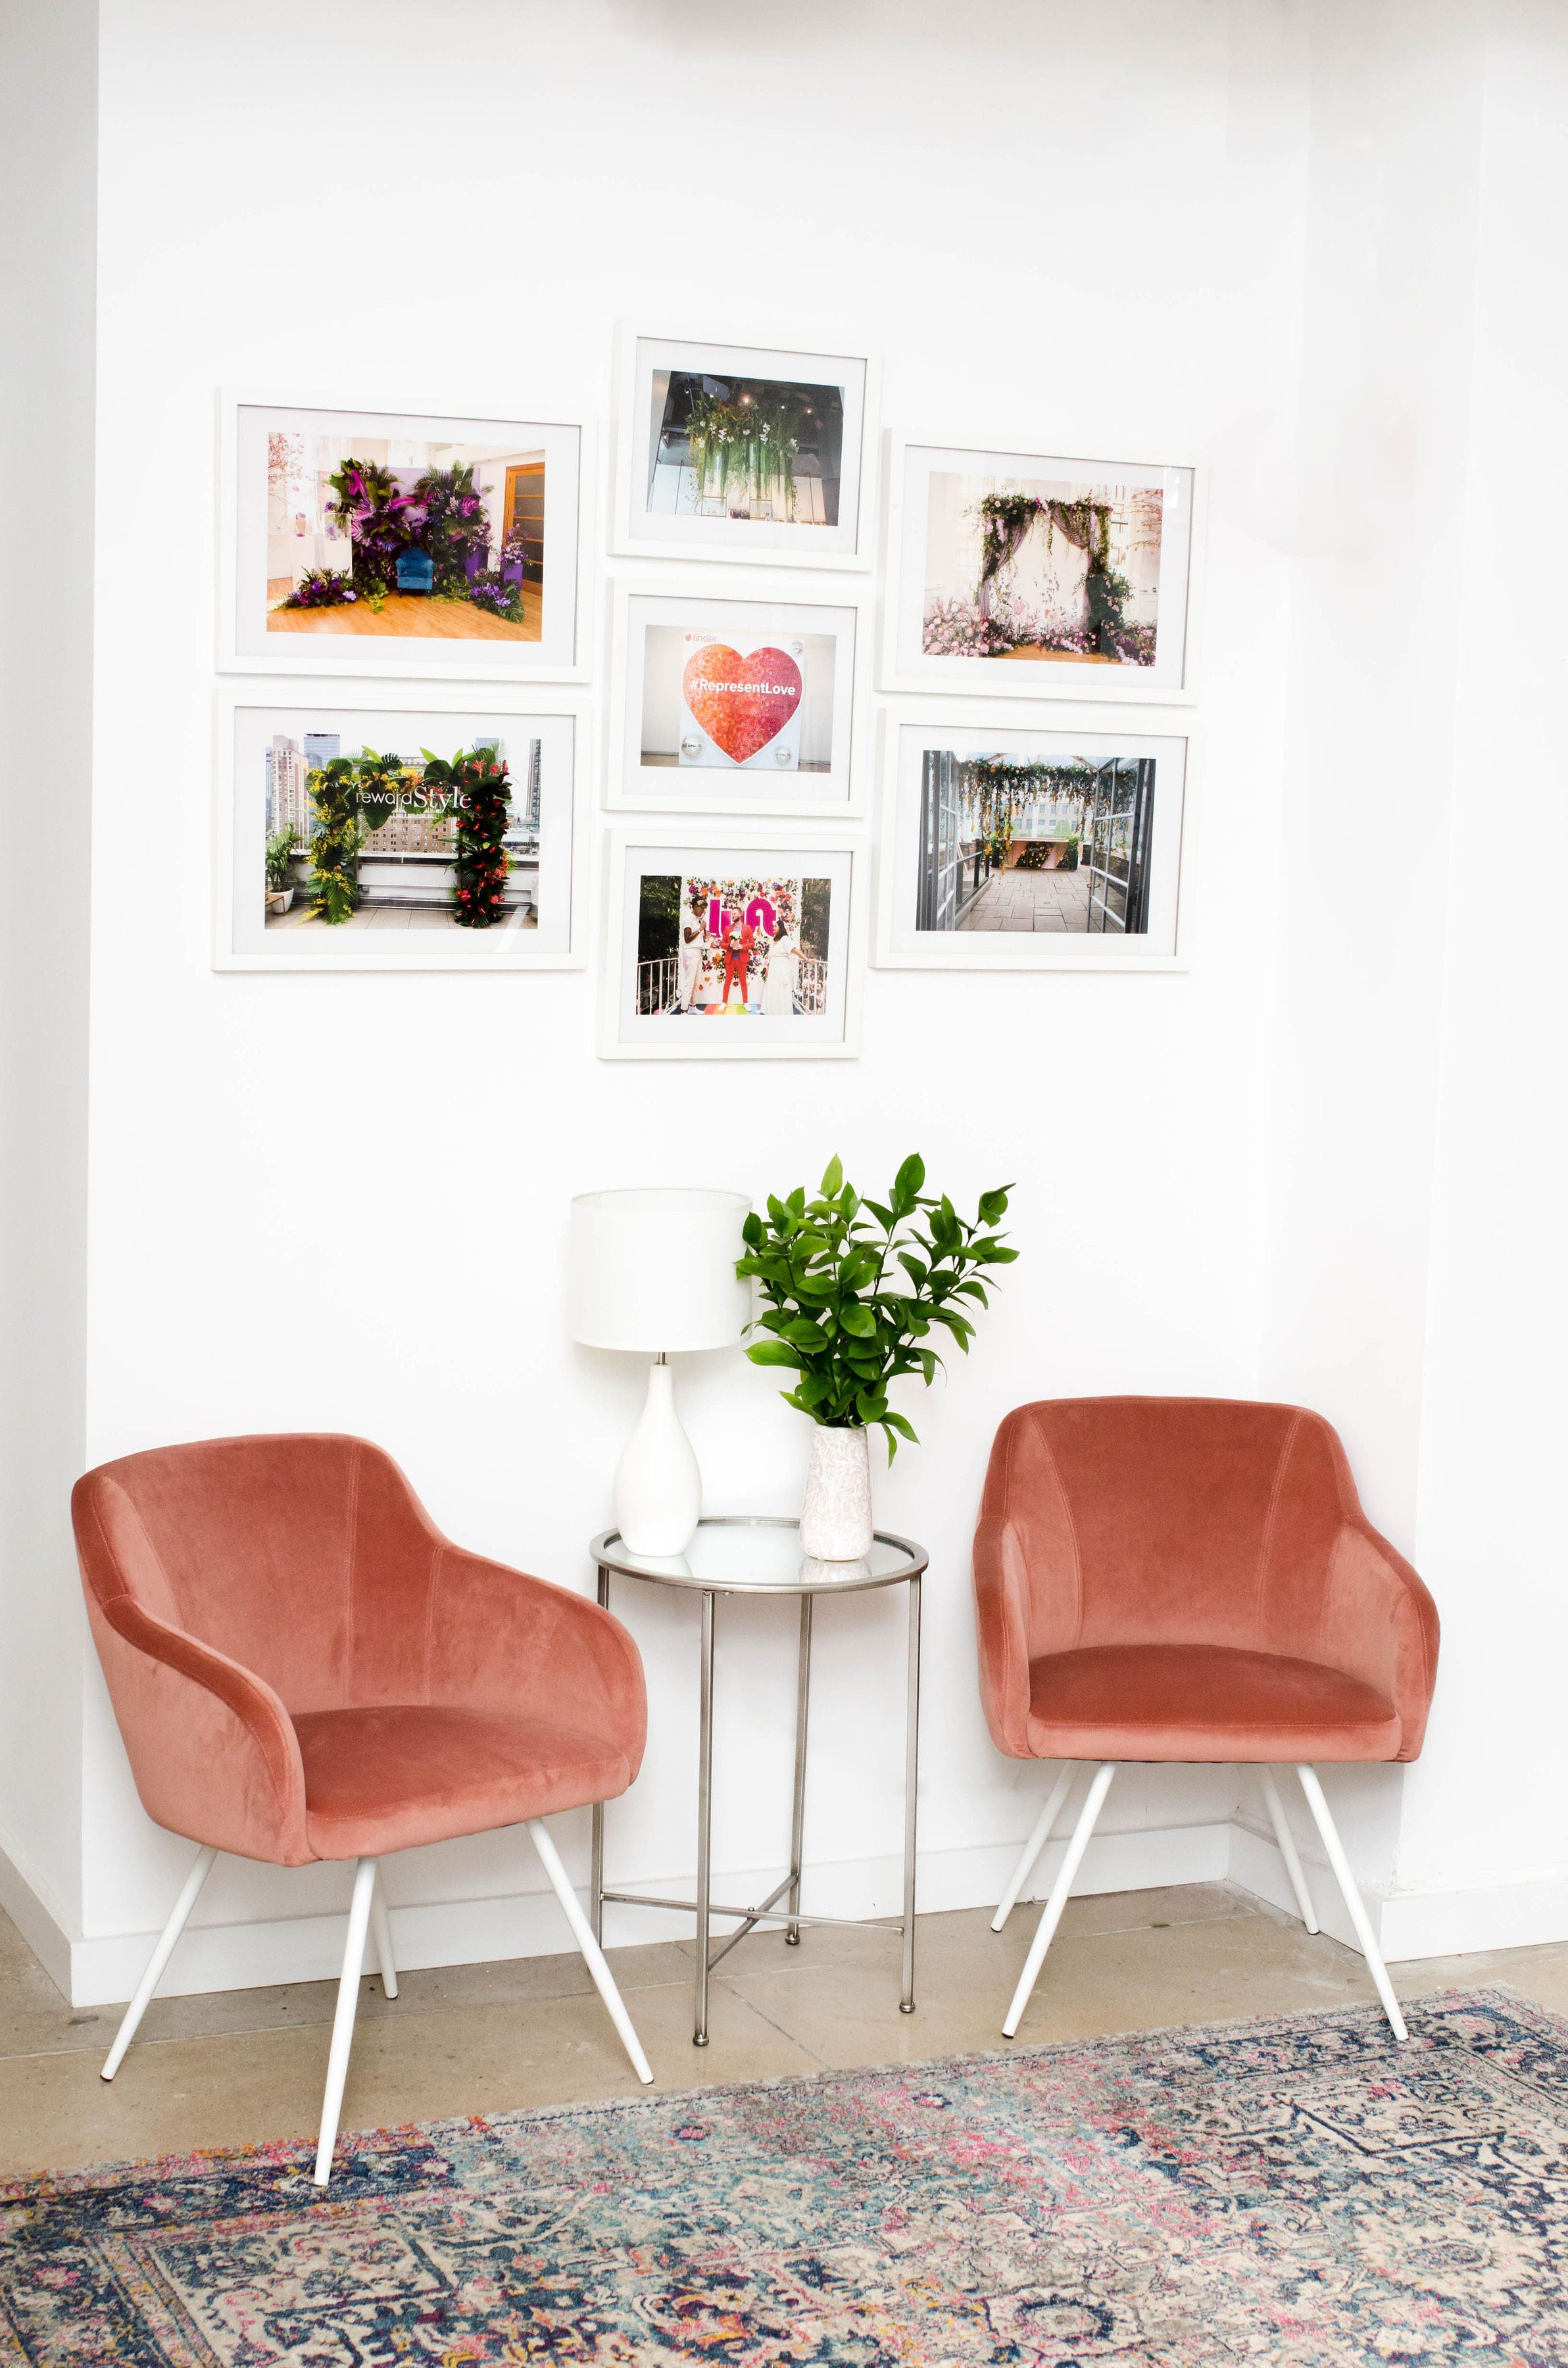 NEW - OFFICE - SPACE - MANHATTAN - COOL - OPEN - RECEPTION - CHAIRS - B FLORAL